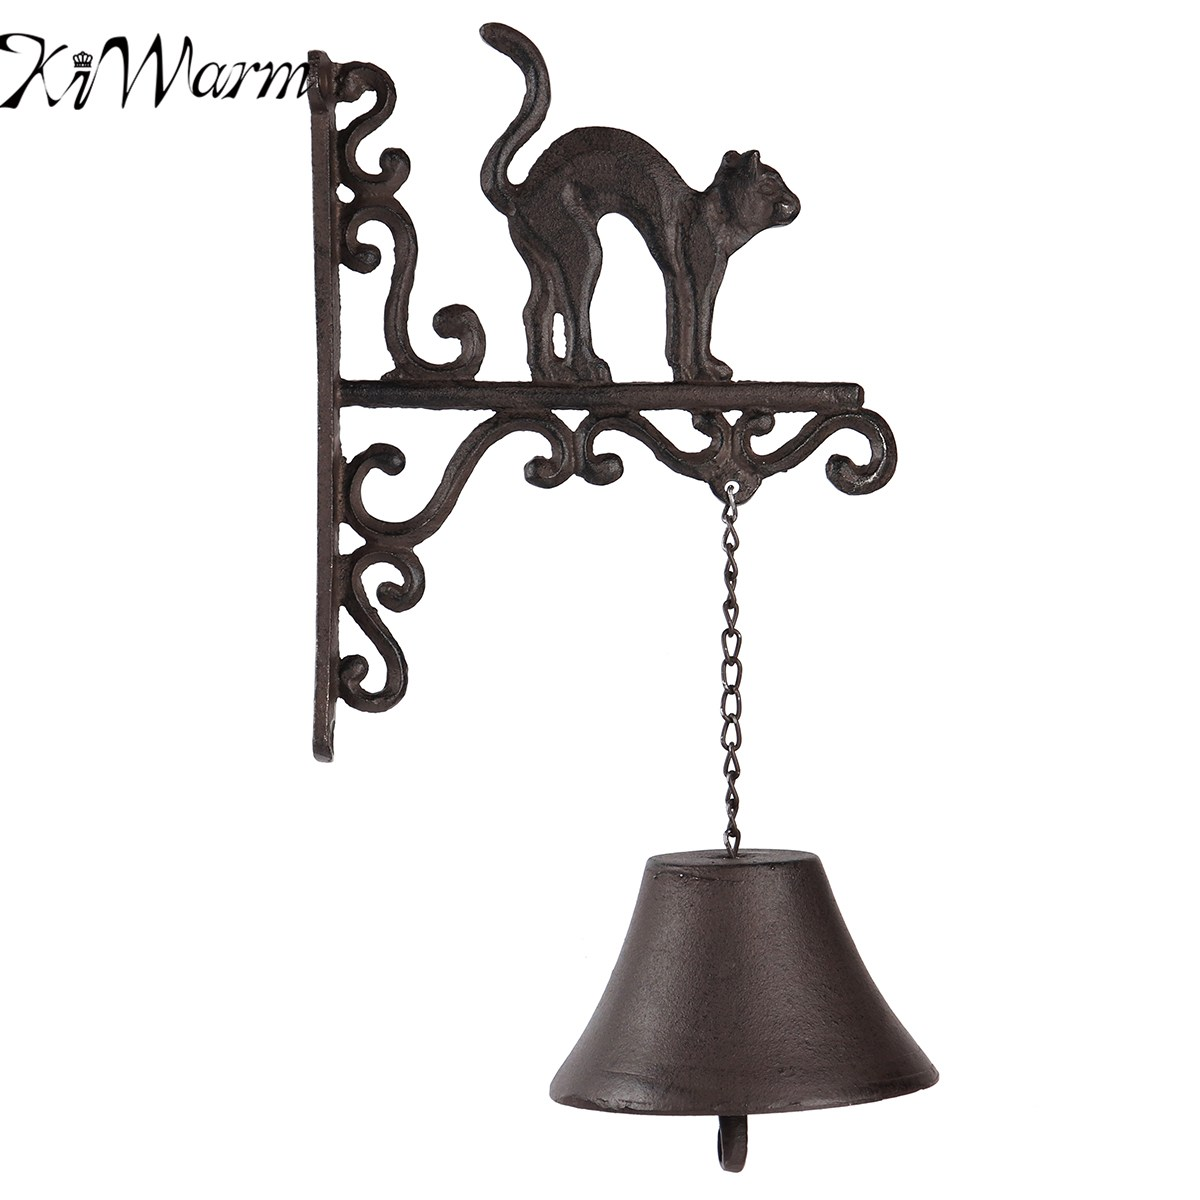 KiWarm Exquisite Cast Iron Door Bell Metal Wall Mounted Bend Back Cat Design for Home Garden Hanging Ornament